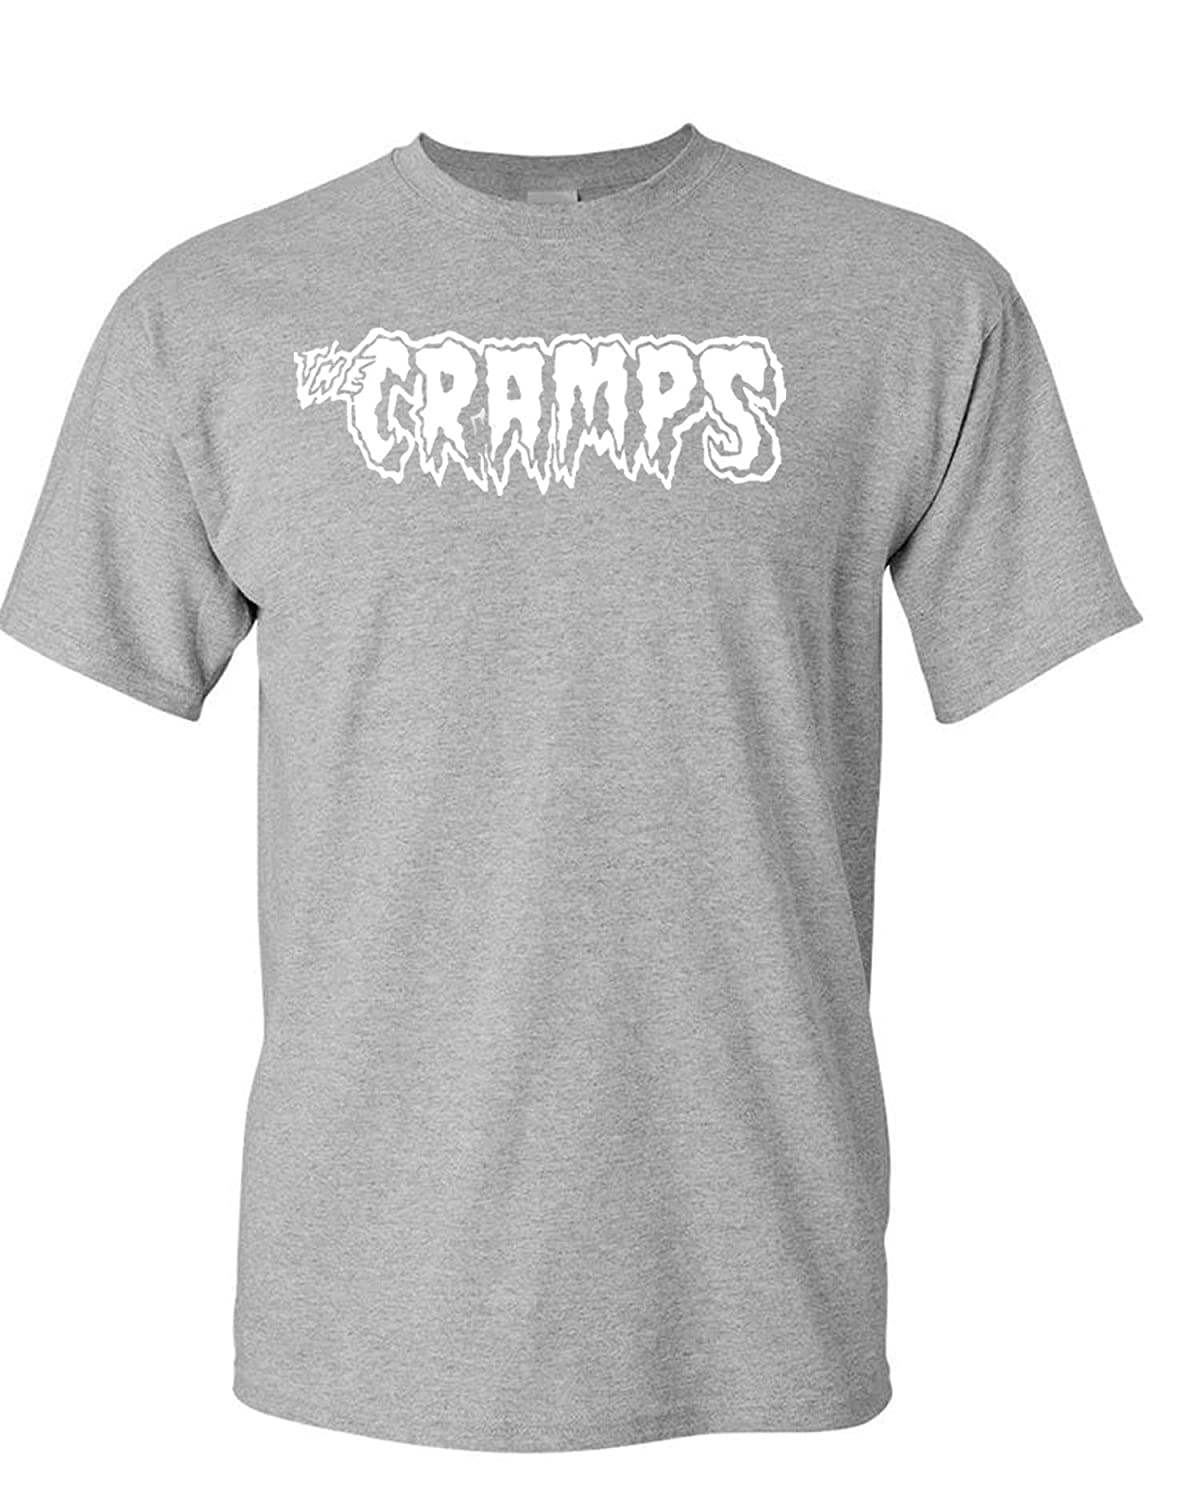 The Cramps T Shirts